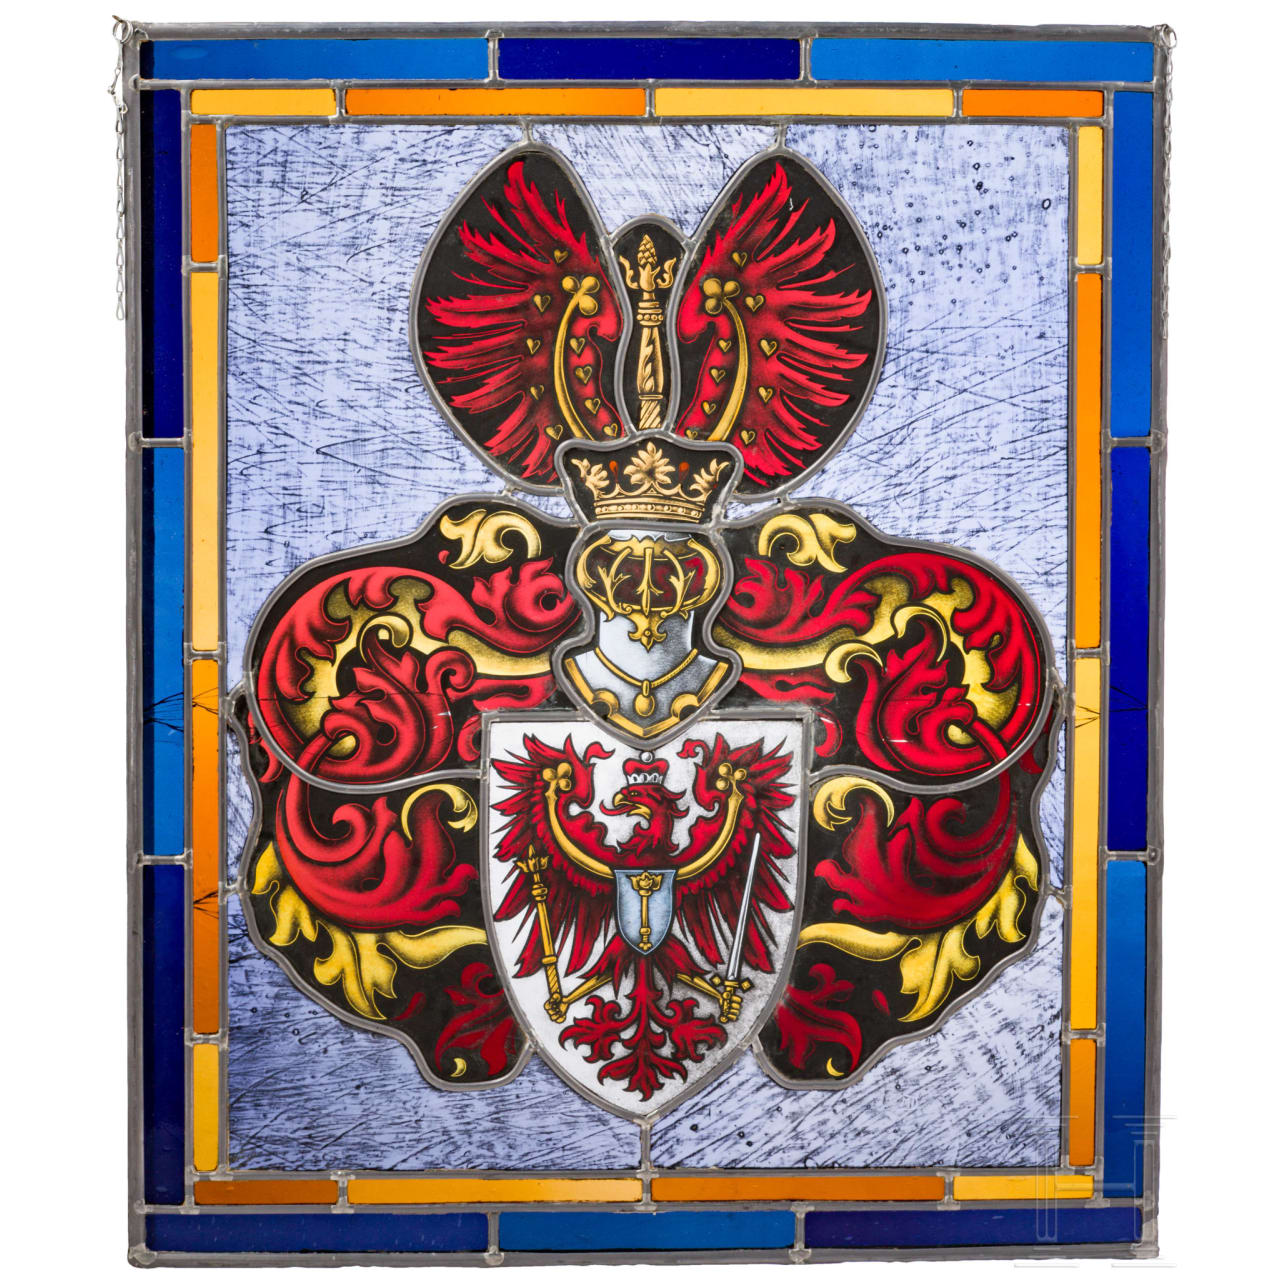 A glass picture of the coat of arms of the Margraviate of Brandenburg, 20th century